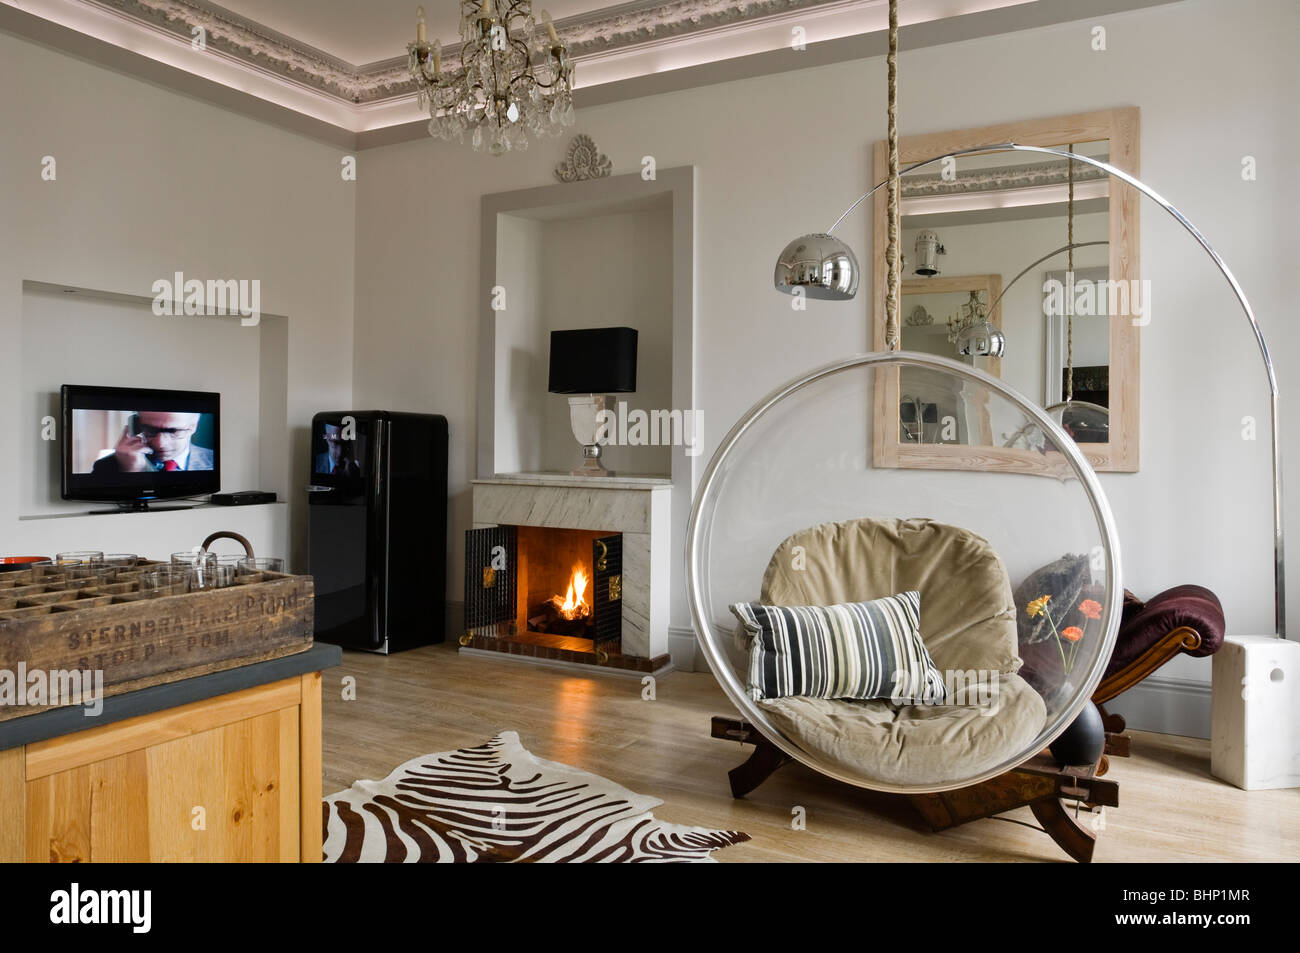 eero aarnio bubble chair in living room with zebra skin rug and stock photo 28143831 alamy. Black Bedroom Furniture Sets. Home Design Ideas